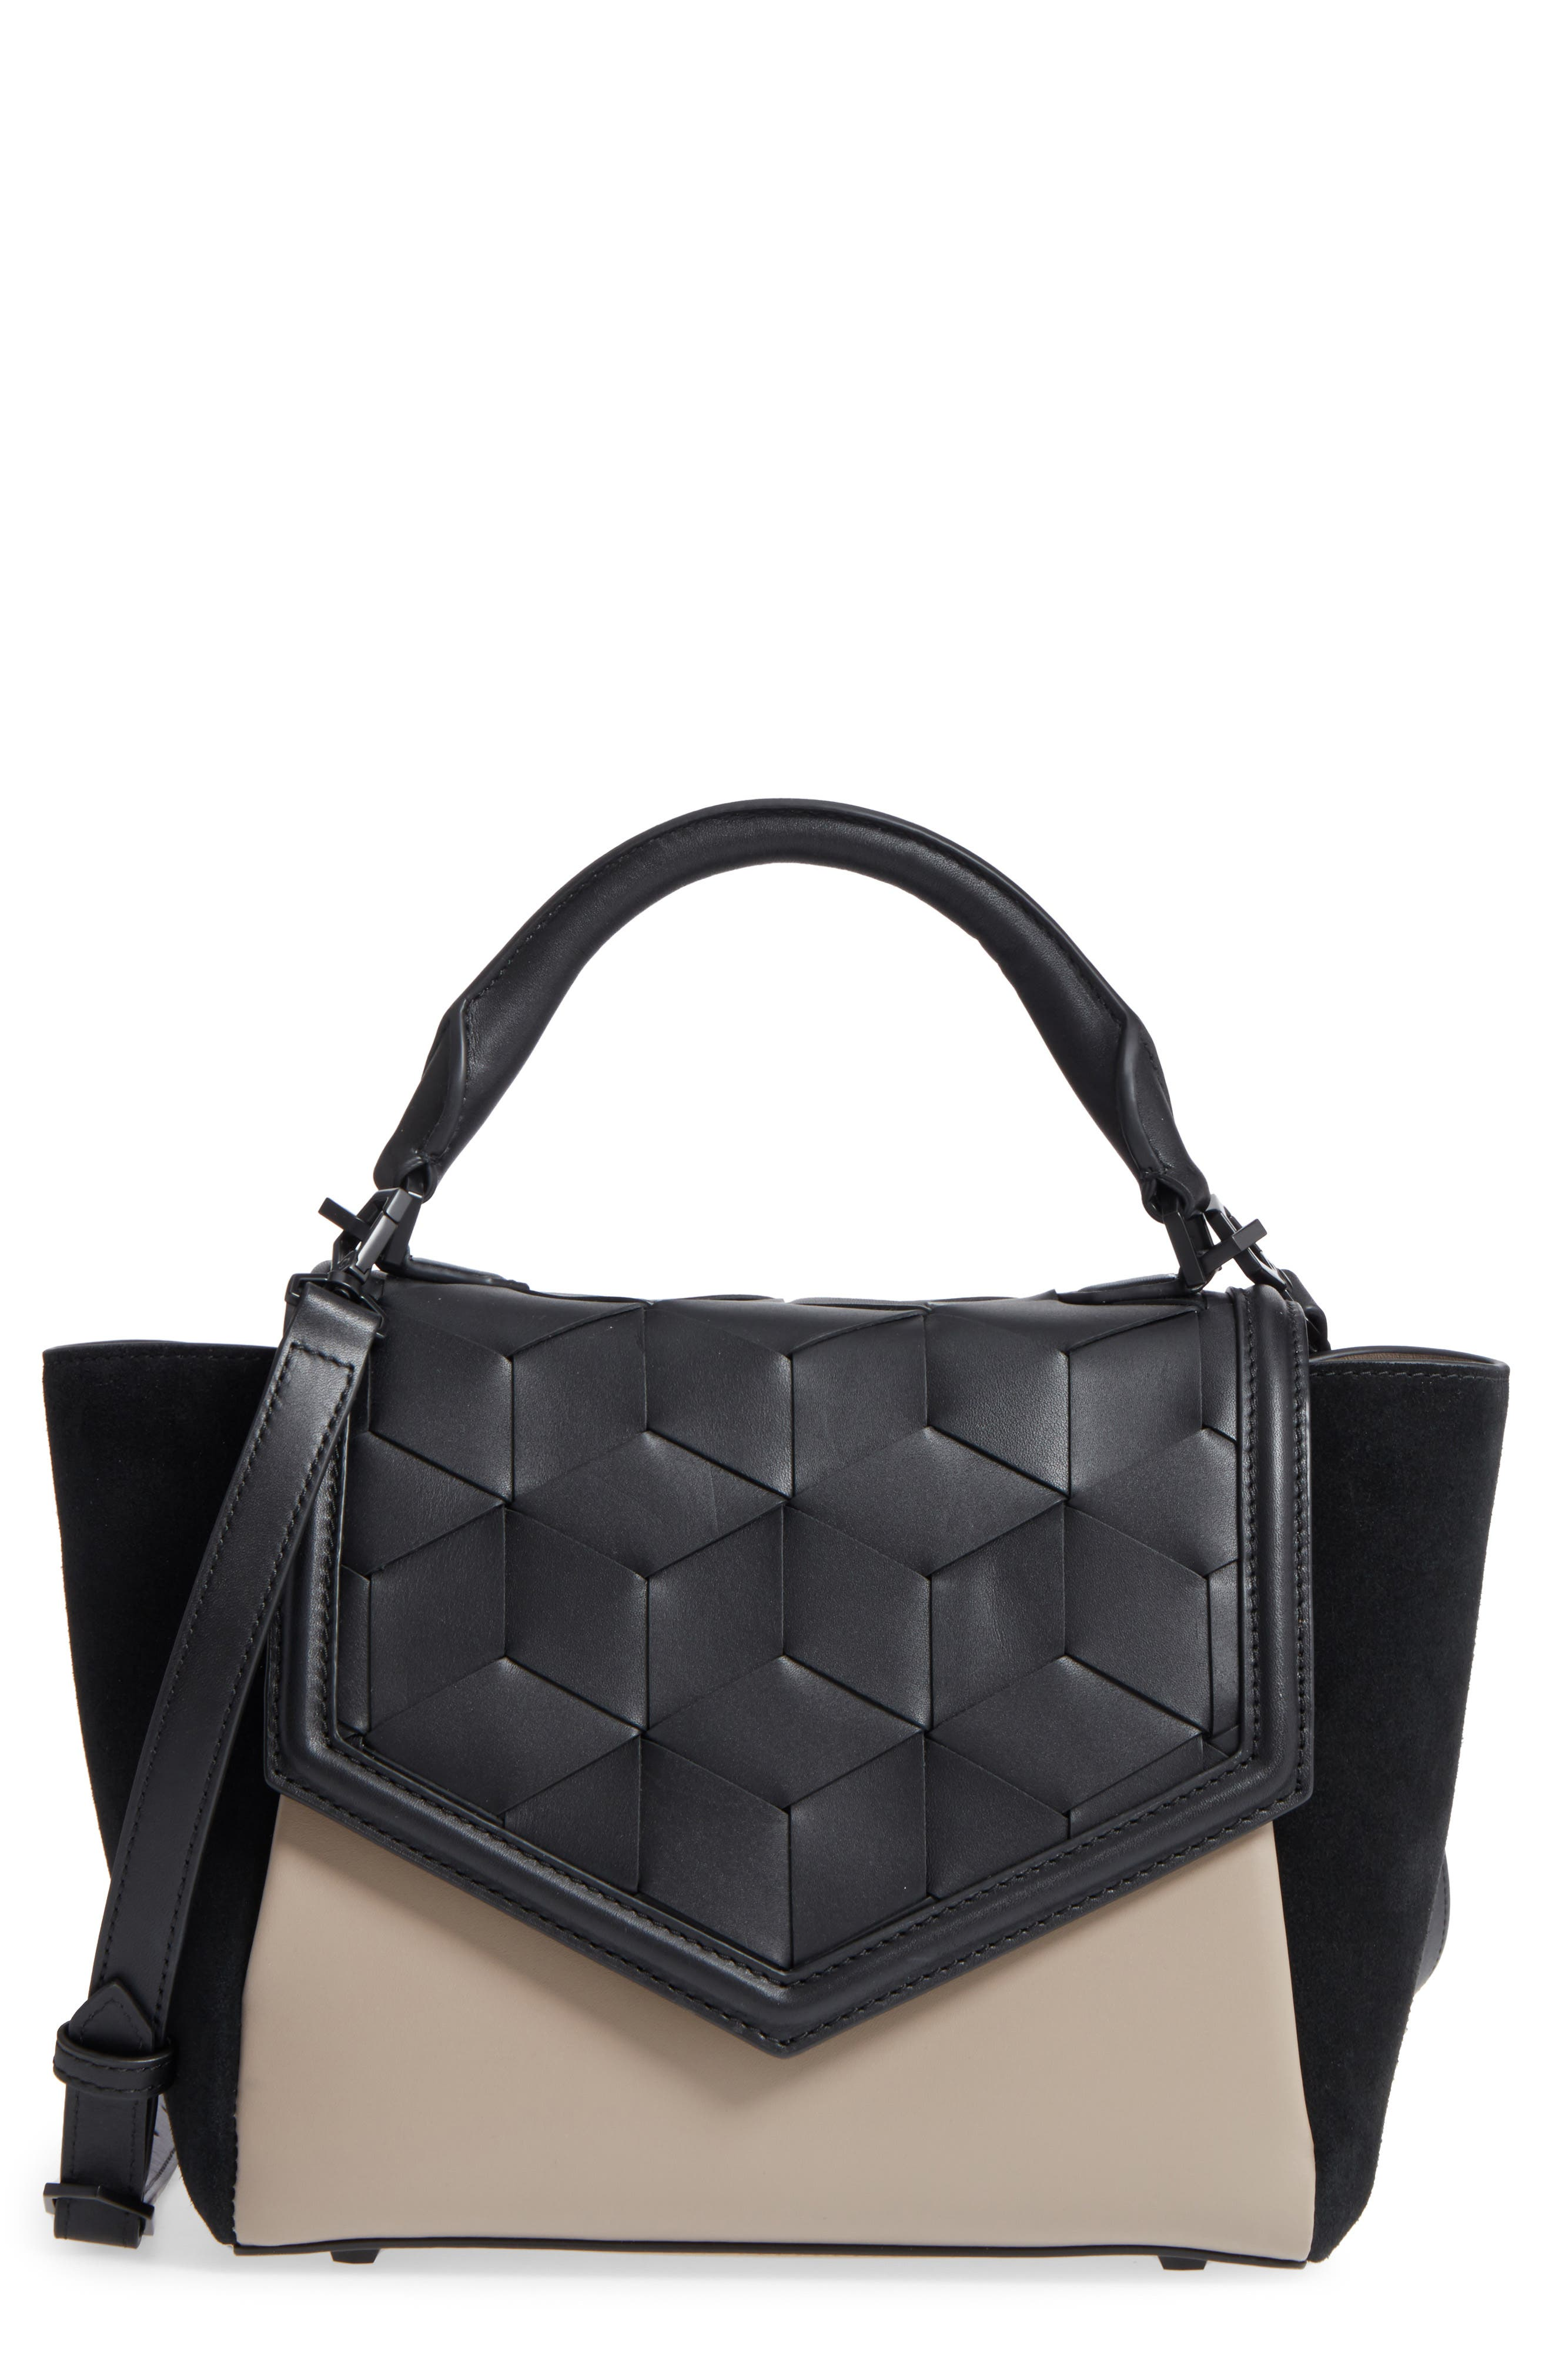 Small Saunter Colorblocked Leather & Suede Top Handle Satchel,                         Main,                         color, Black/ Taupe